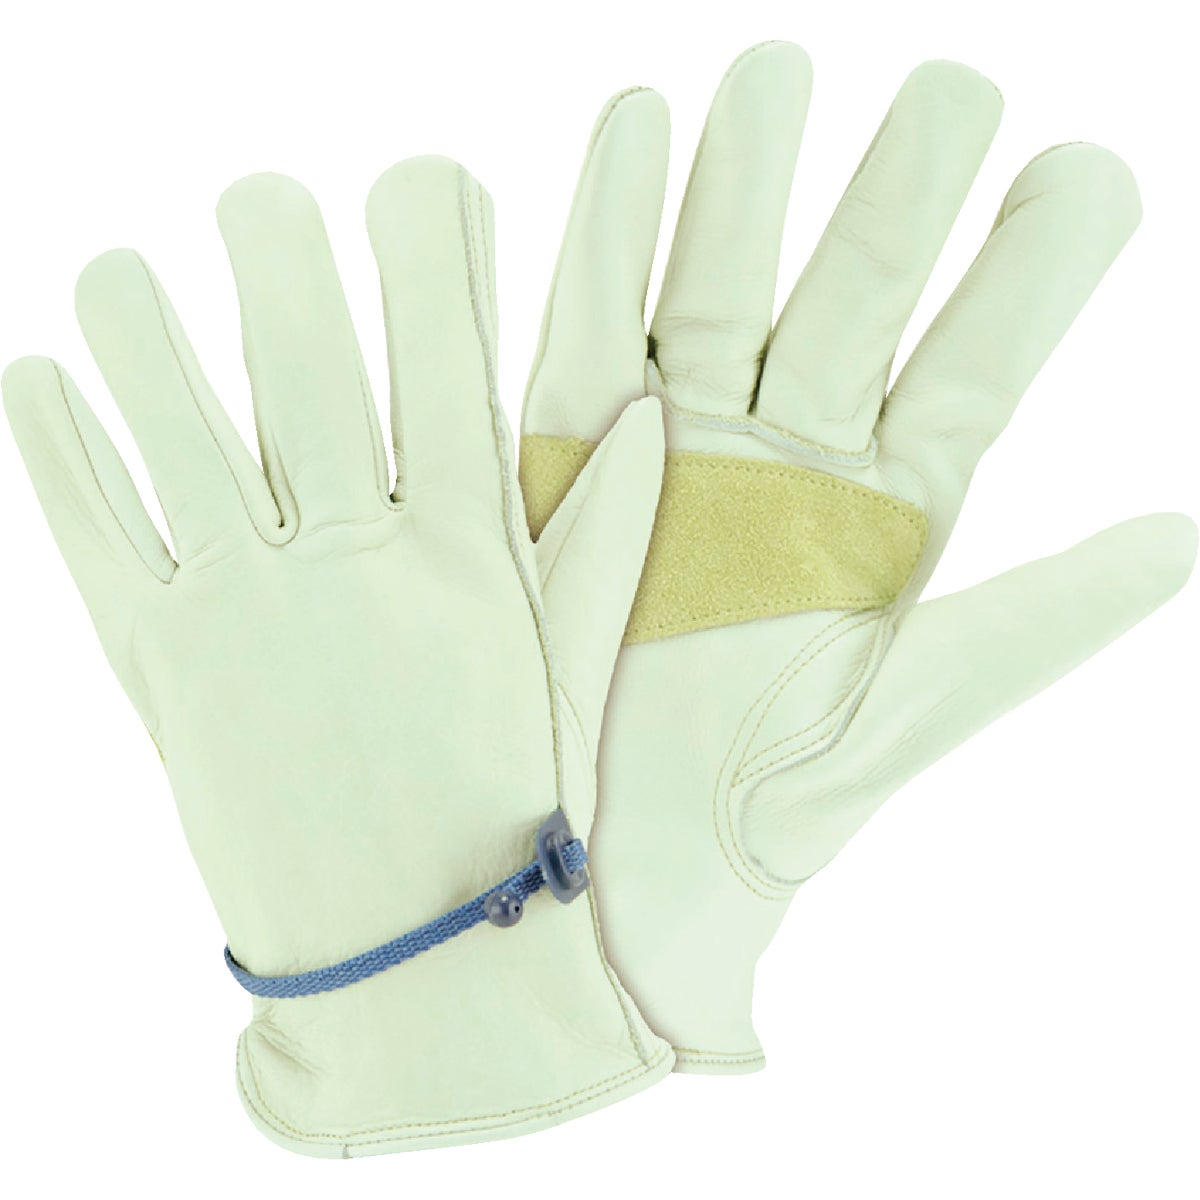 XL GRAIN COWHIDE GLOVE - 1132XL by Wells Lamont